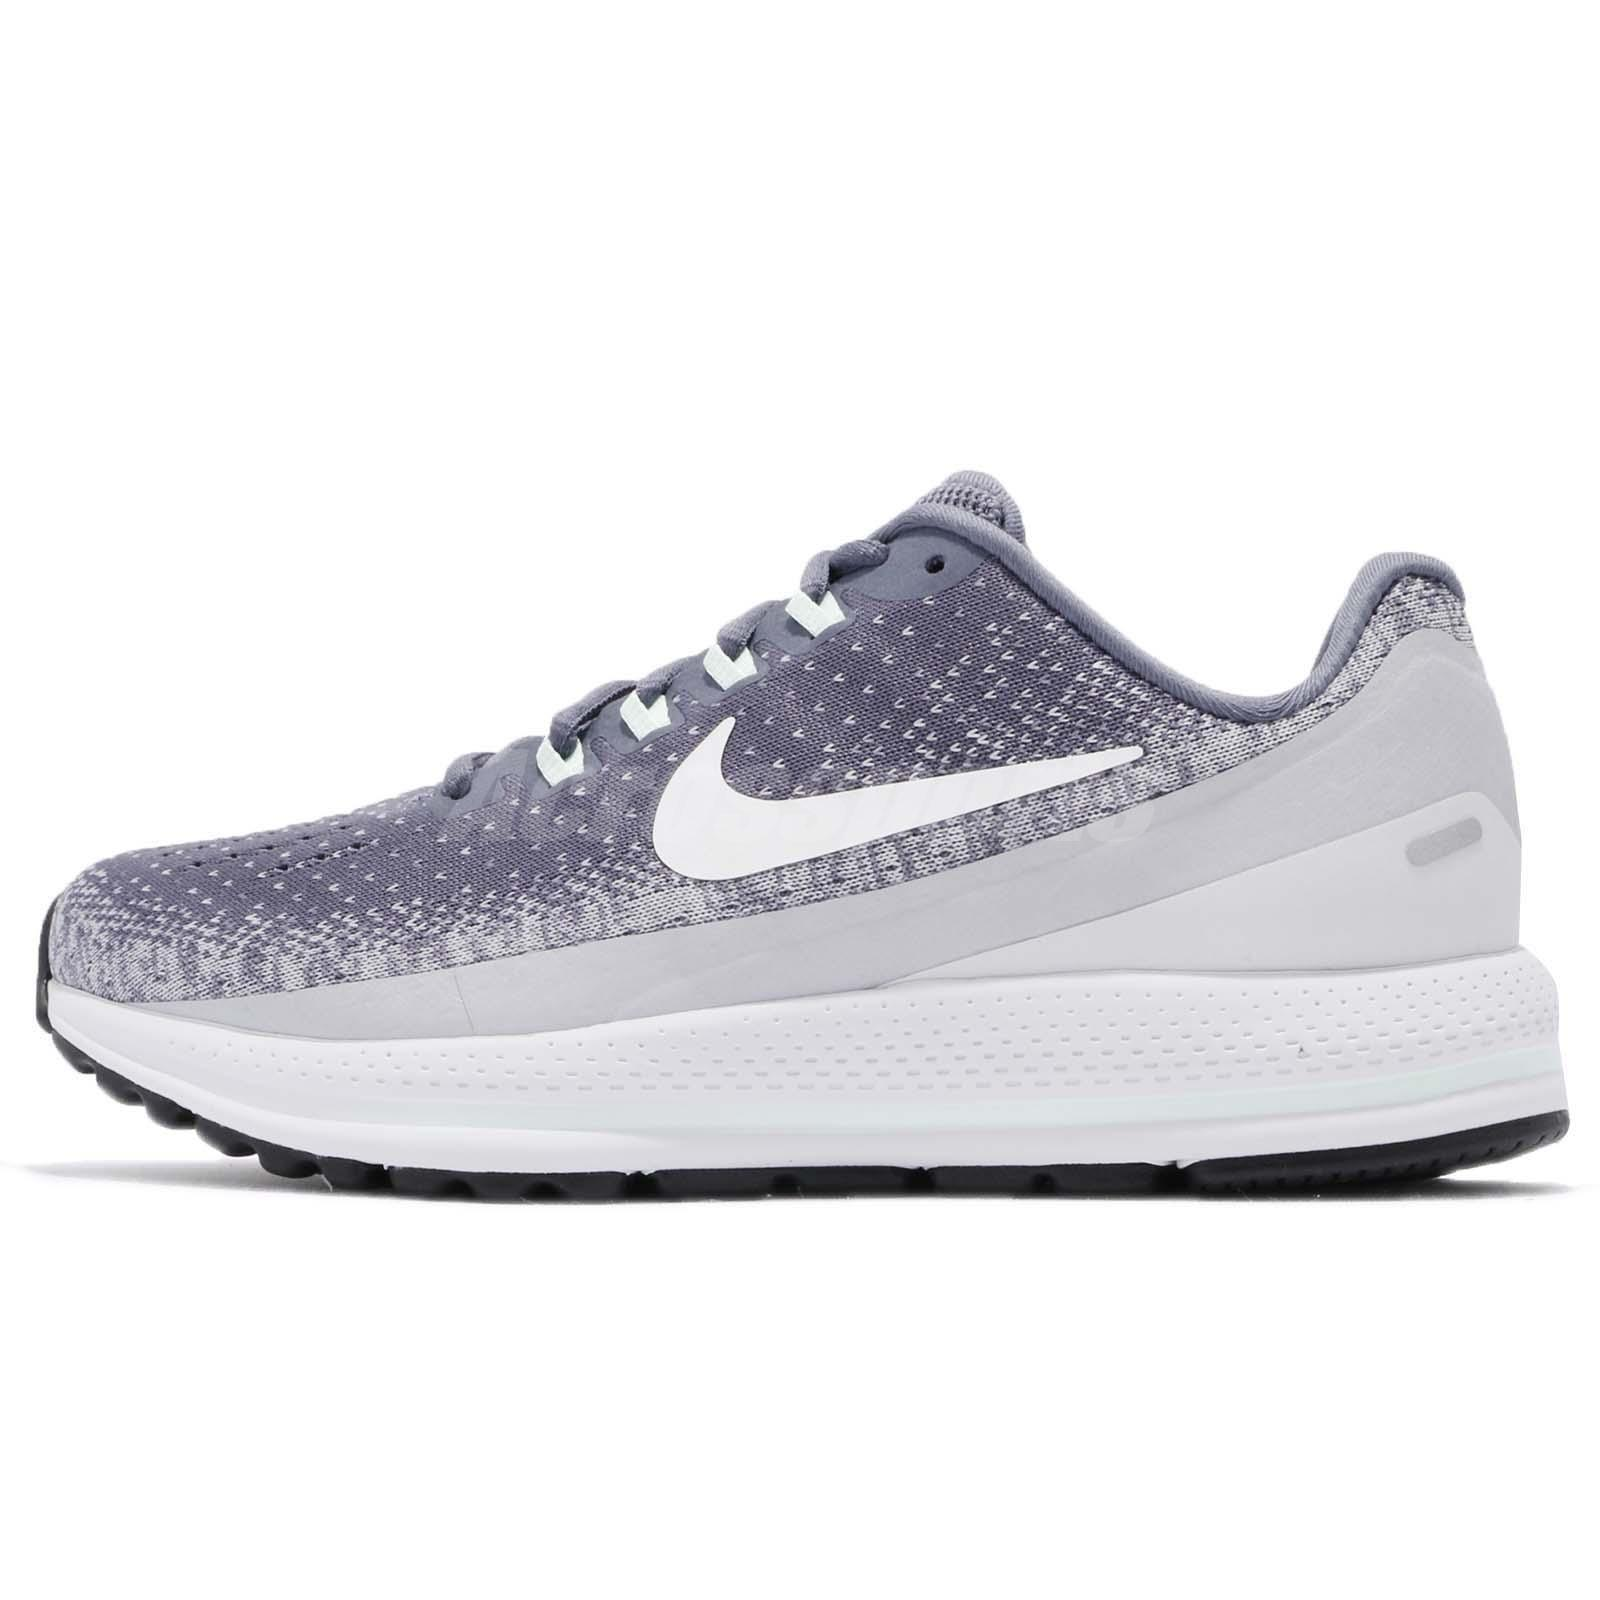 a53ae654d029f Wmns Nike Air Zoom Vomero 13 XIII Light Carbon White Women Running 922909- 002